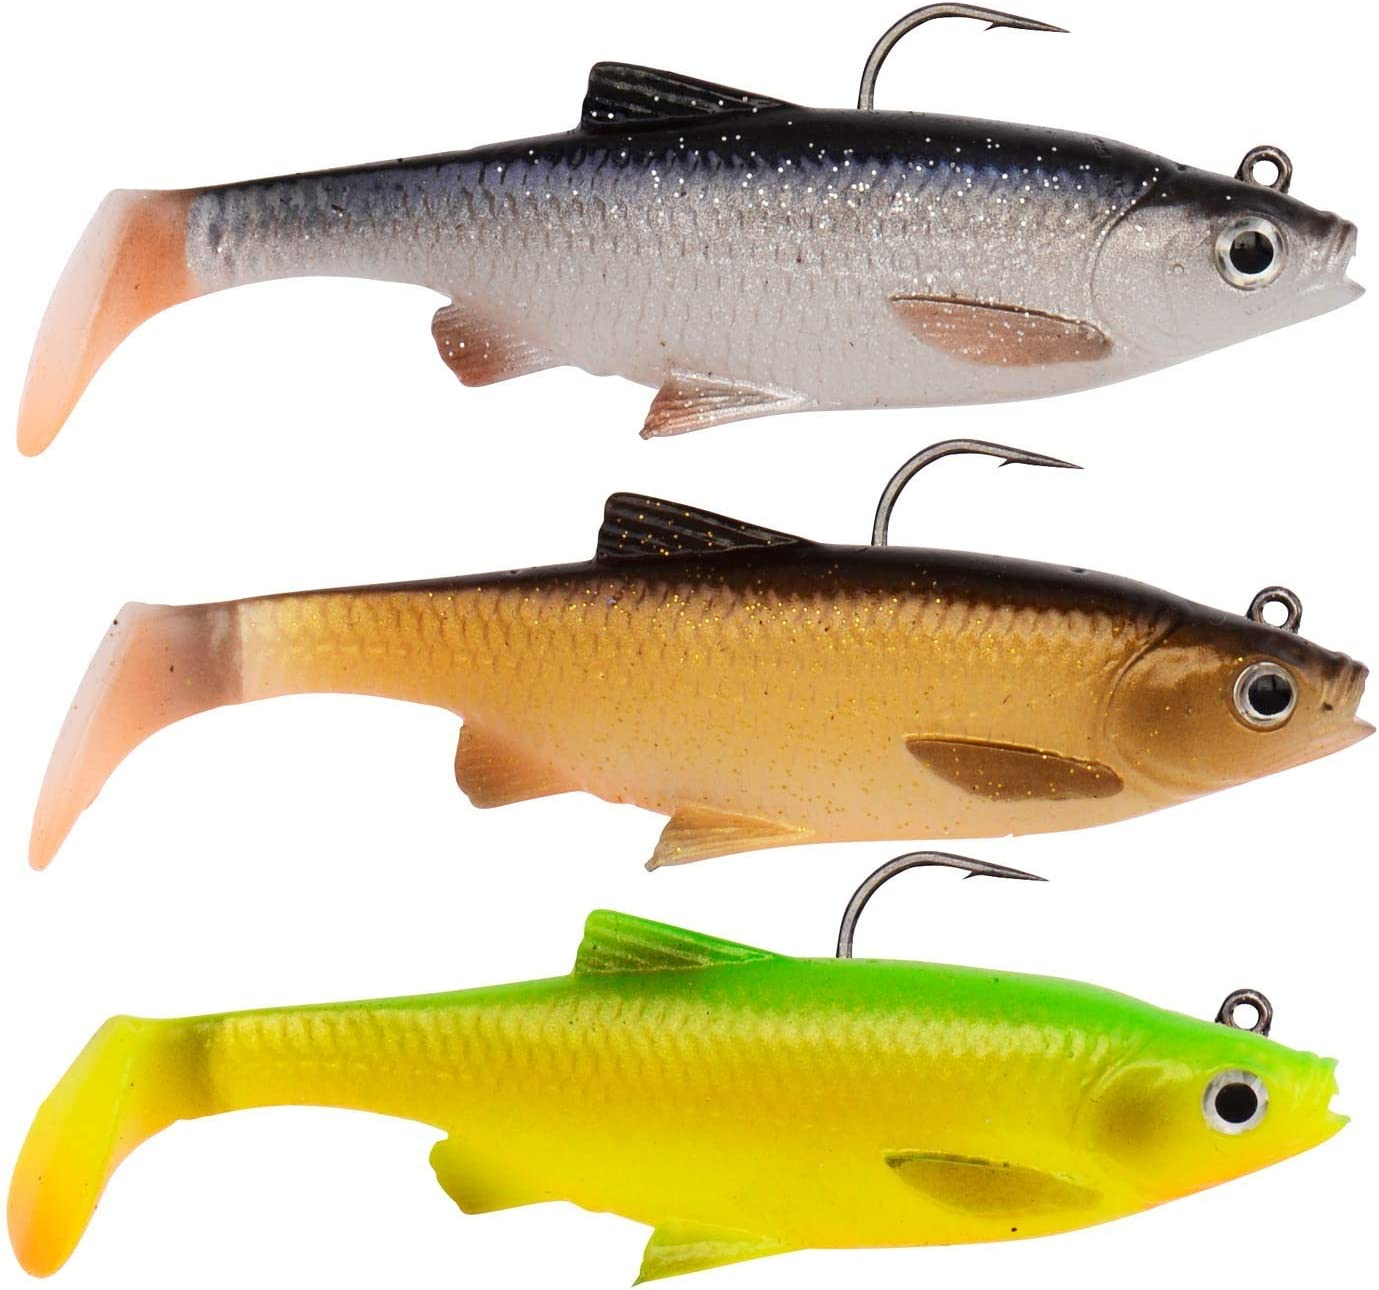 soft bait for pike fishing Savage Gear 2 rubber fish roach for spin fishing soft bait swimbait 3D river roach pike lure rubber shark